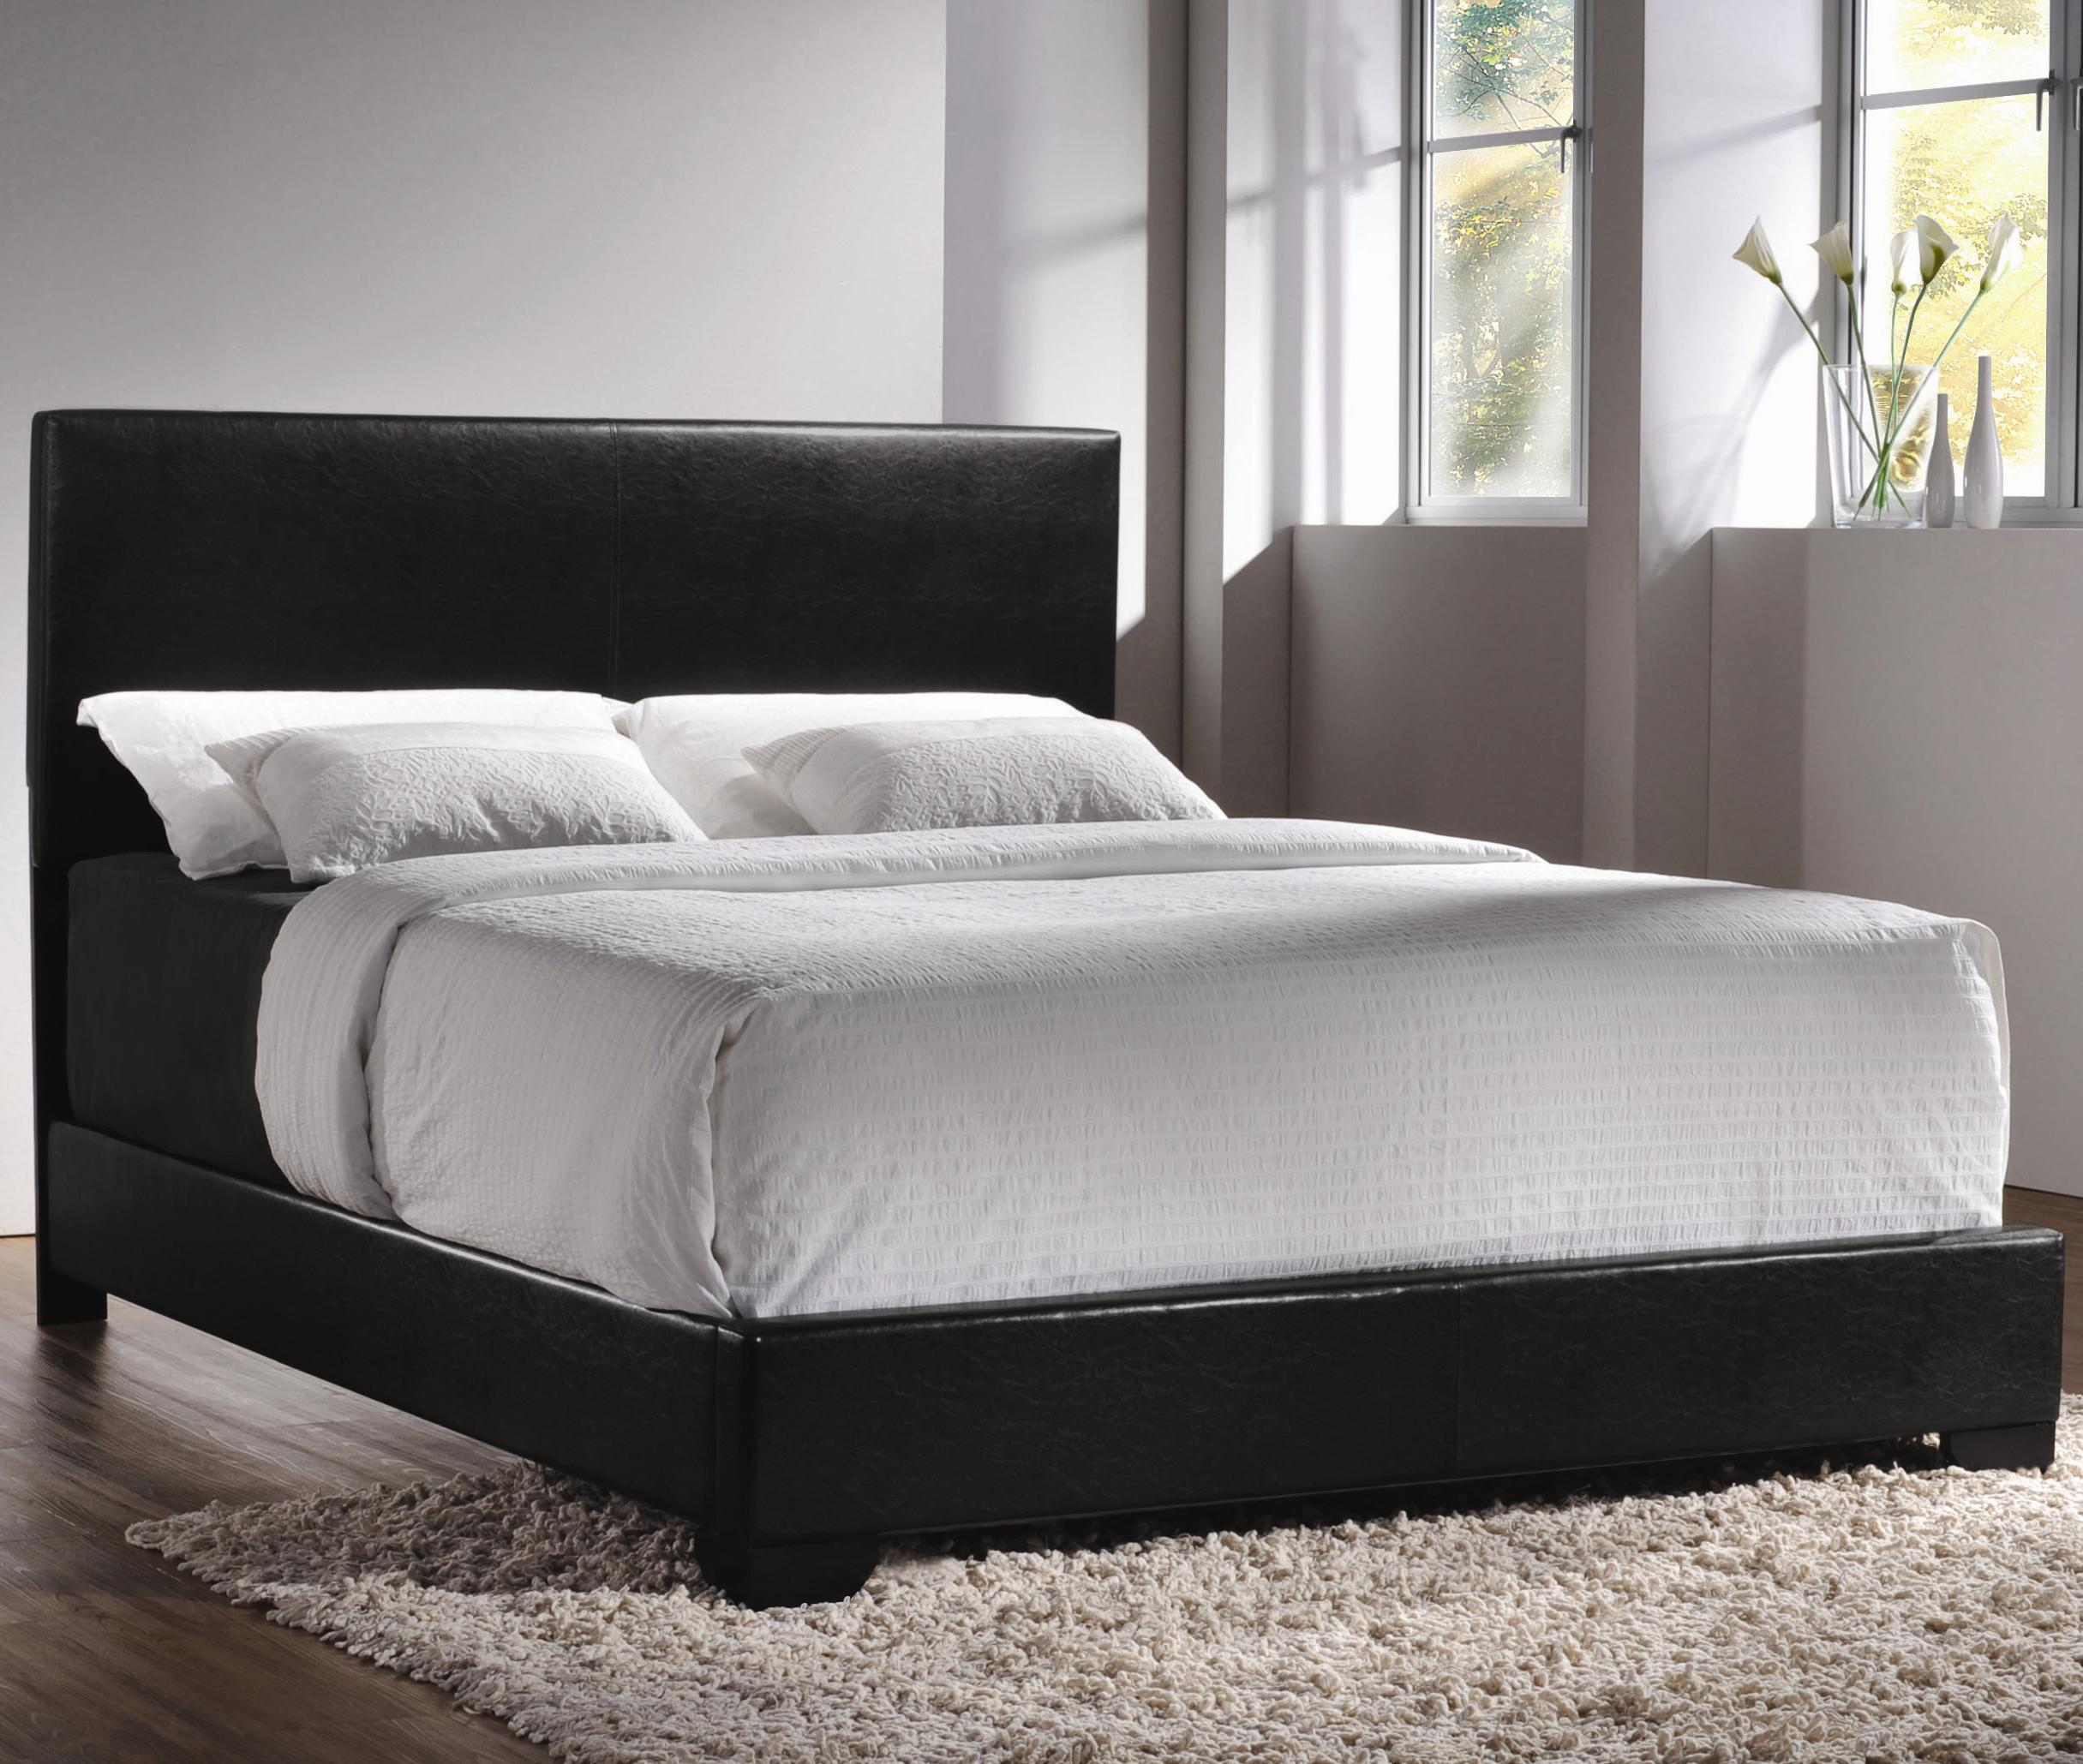 Coaster Upholstered Beds King Upholstered Low-Profile Bed - Item Number: 300260KE